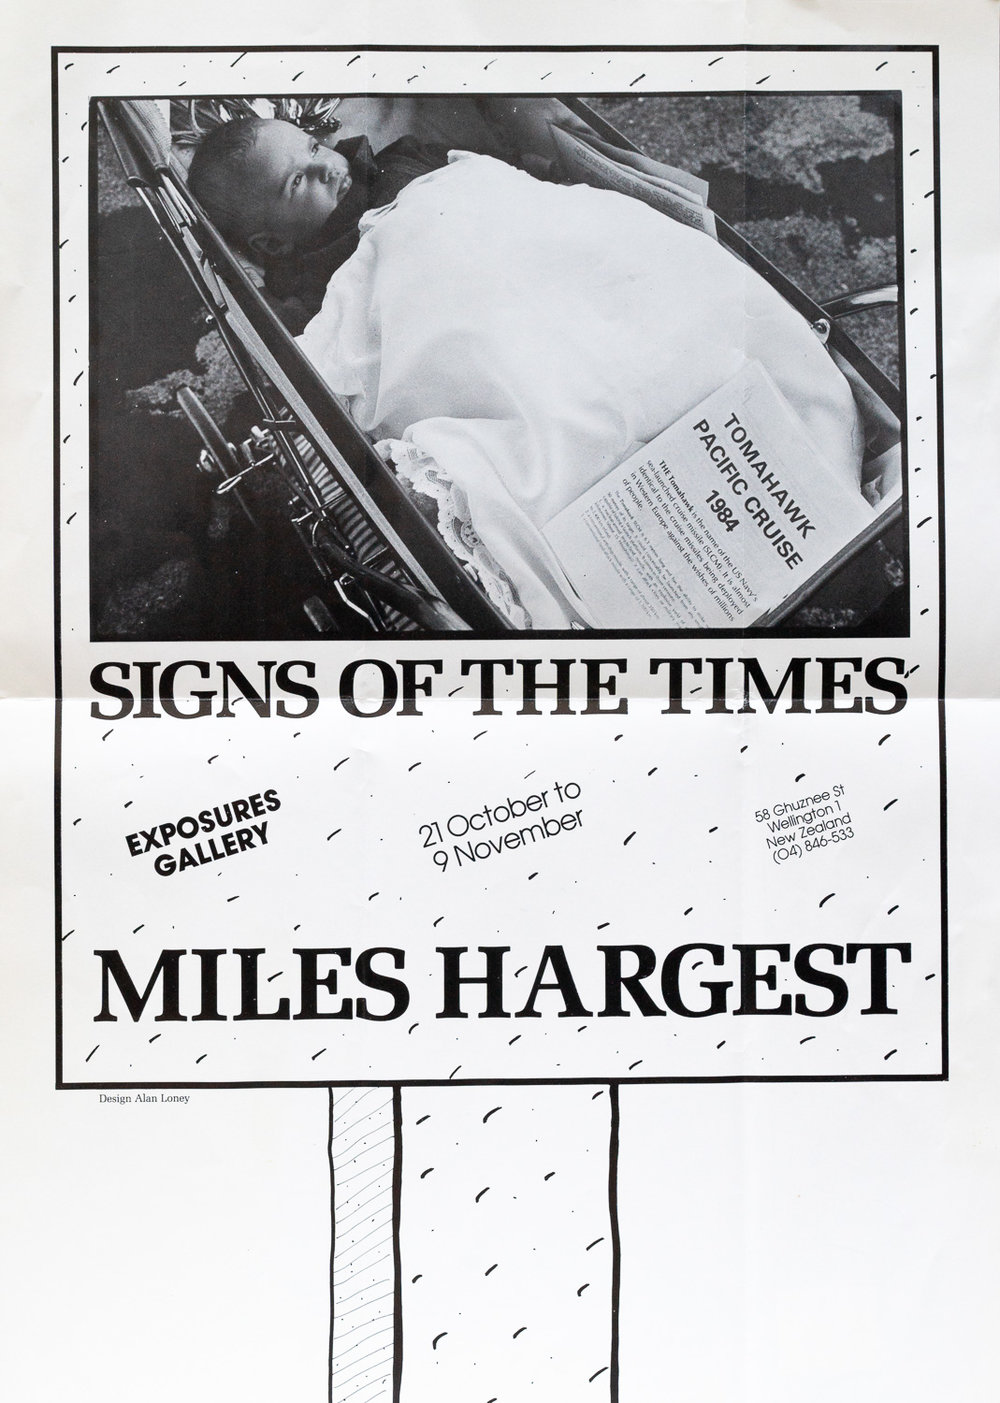 Miles HargestSigns of the Times21 October – 9 November, 1985. Design by Alan Loney